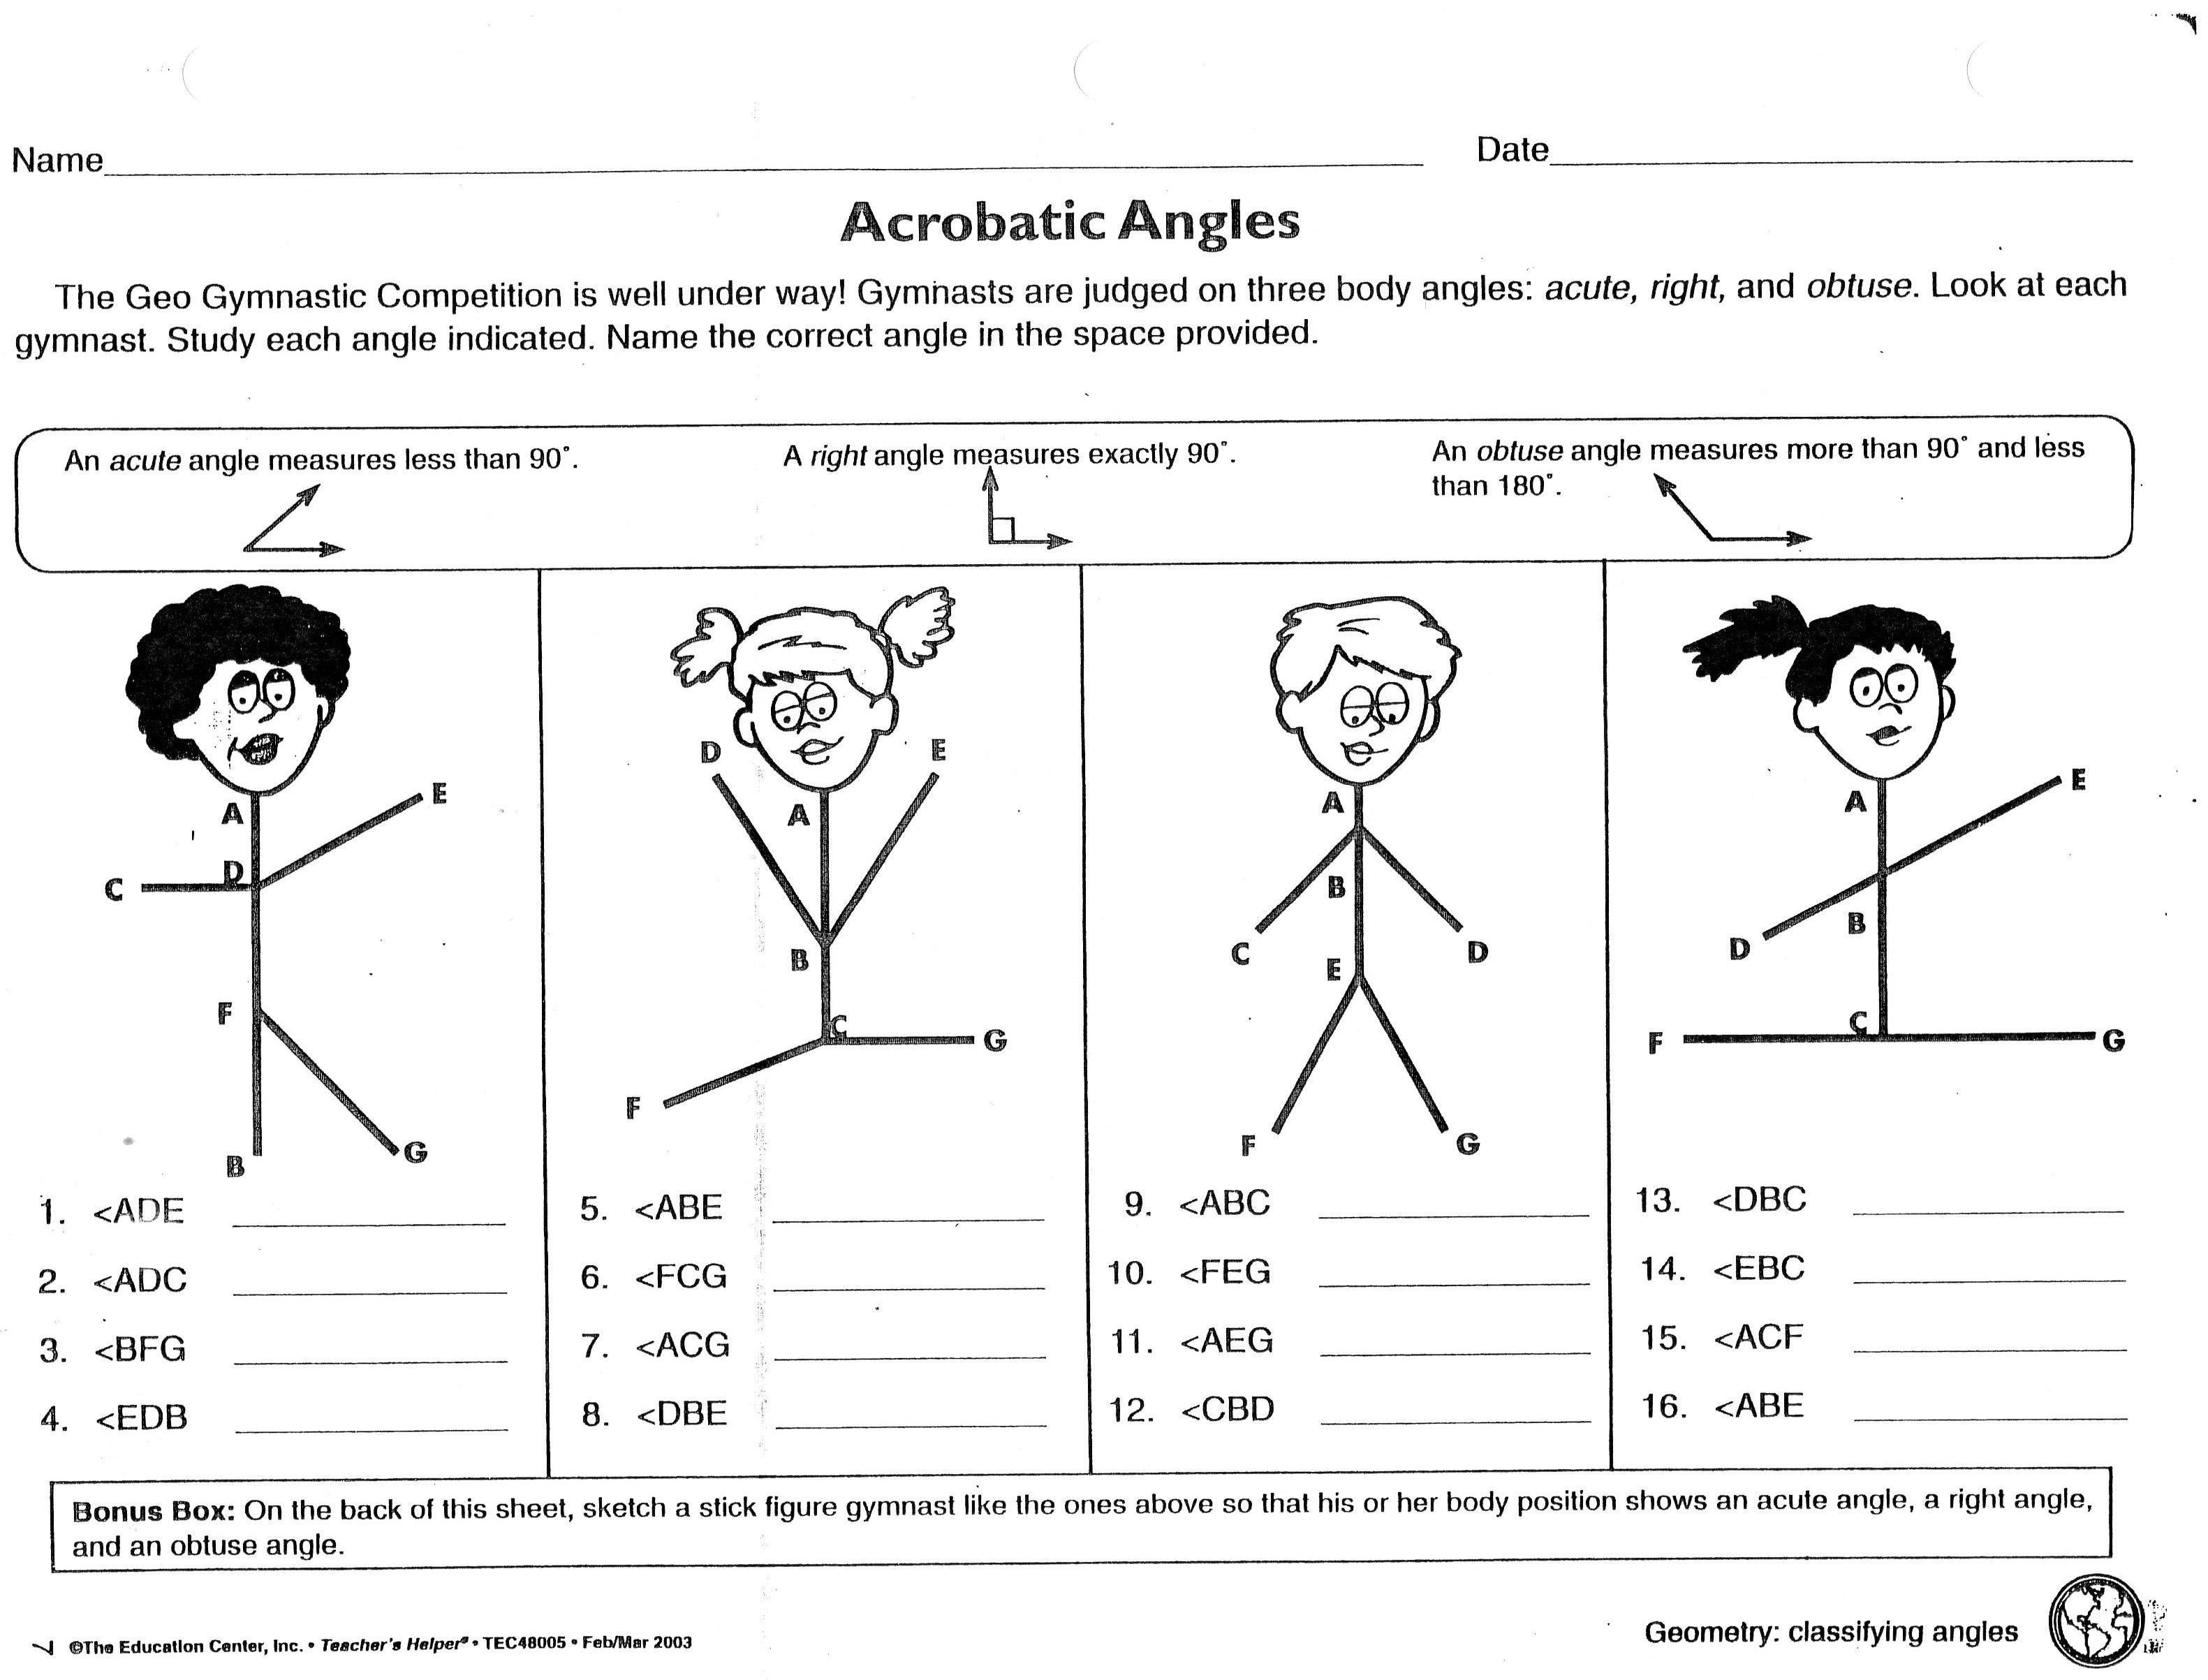 Acrobatic Angles Worksheet.jpg